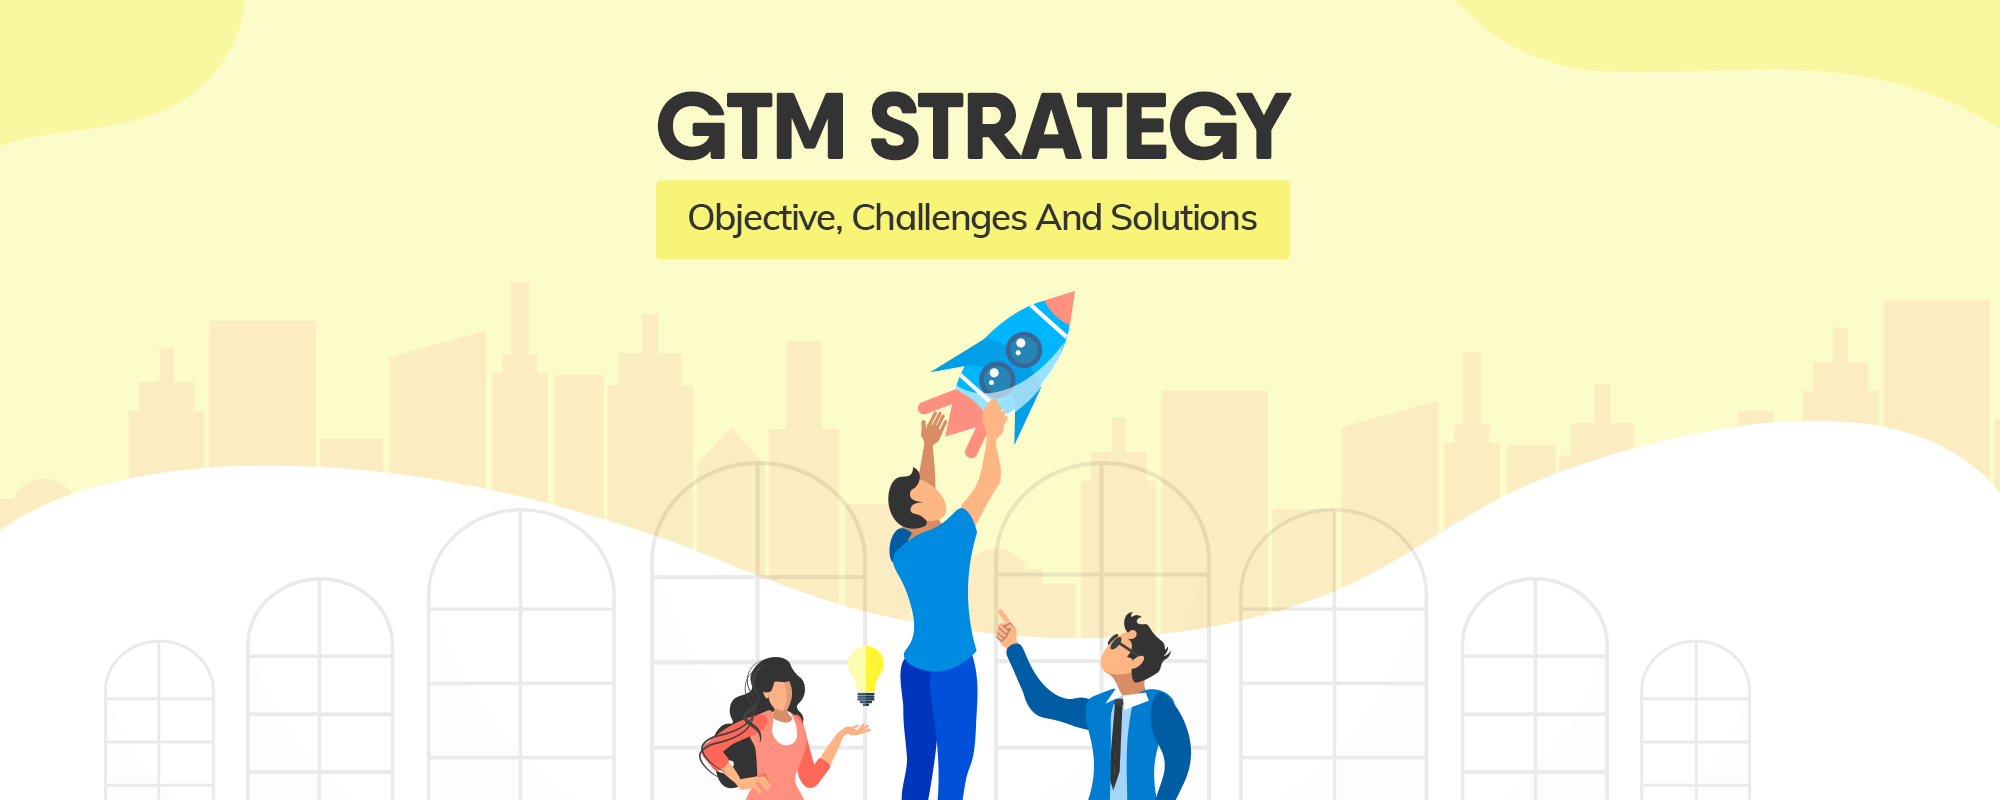 GTM Strategy: Objective, Challenges And Solutions